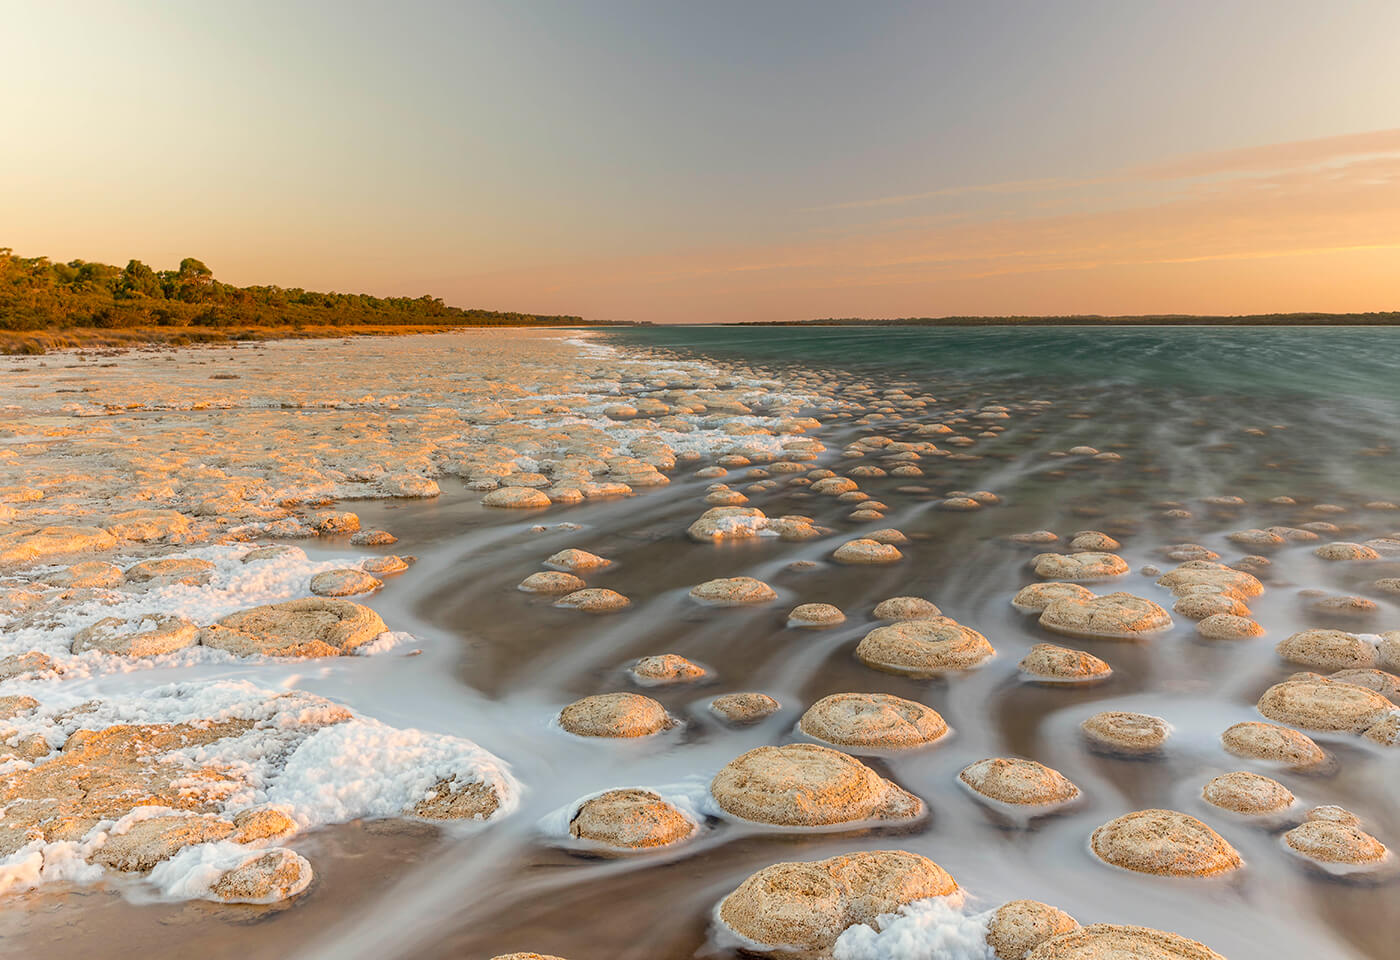 Thrombolites photography by Steve Huddy